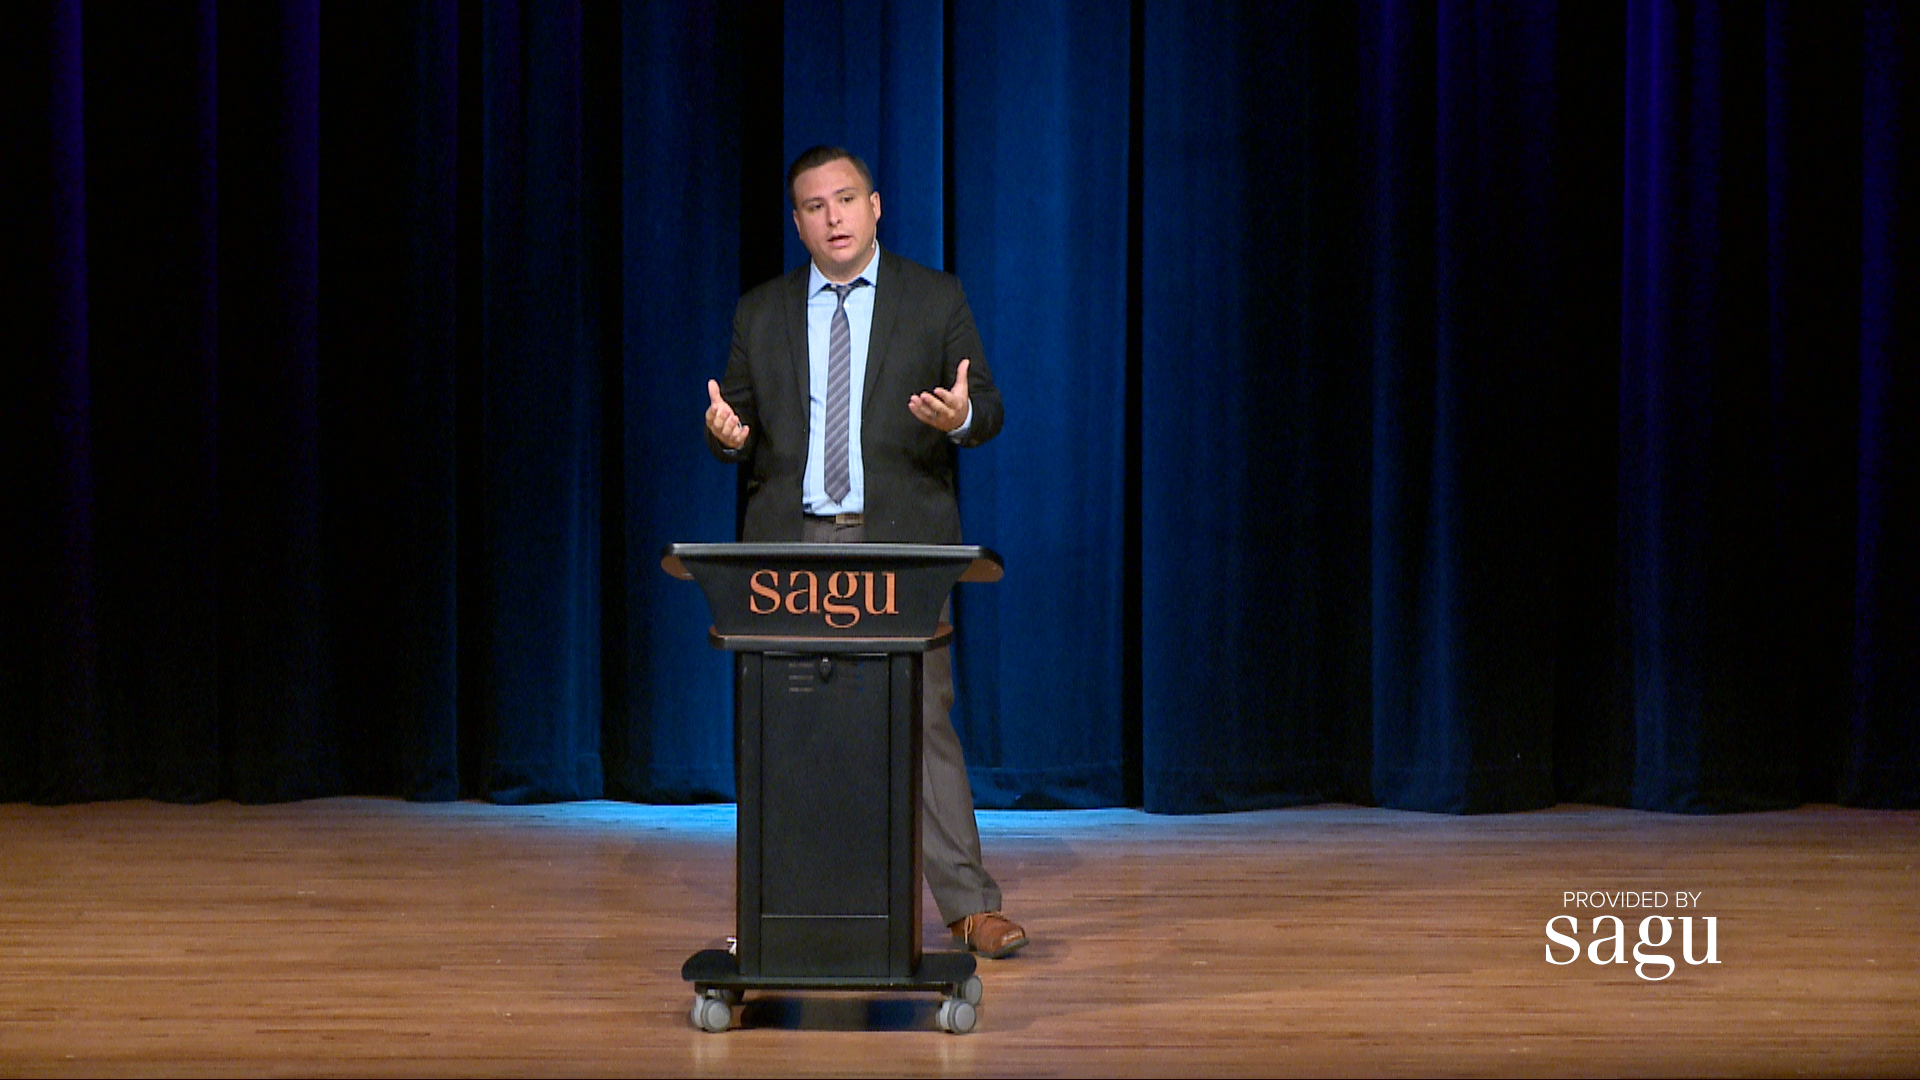 Brian Stachowski presents a lecture on the world that Abraham ventured through, Canaan.